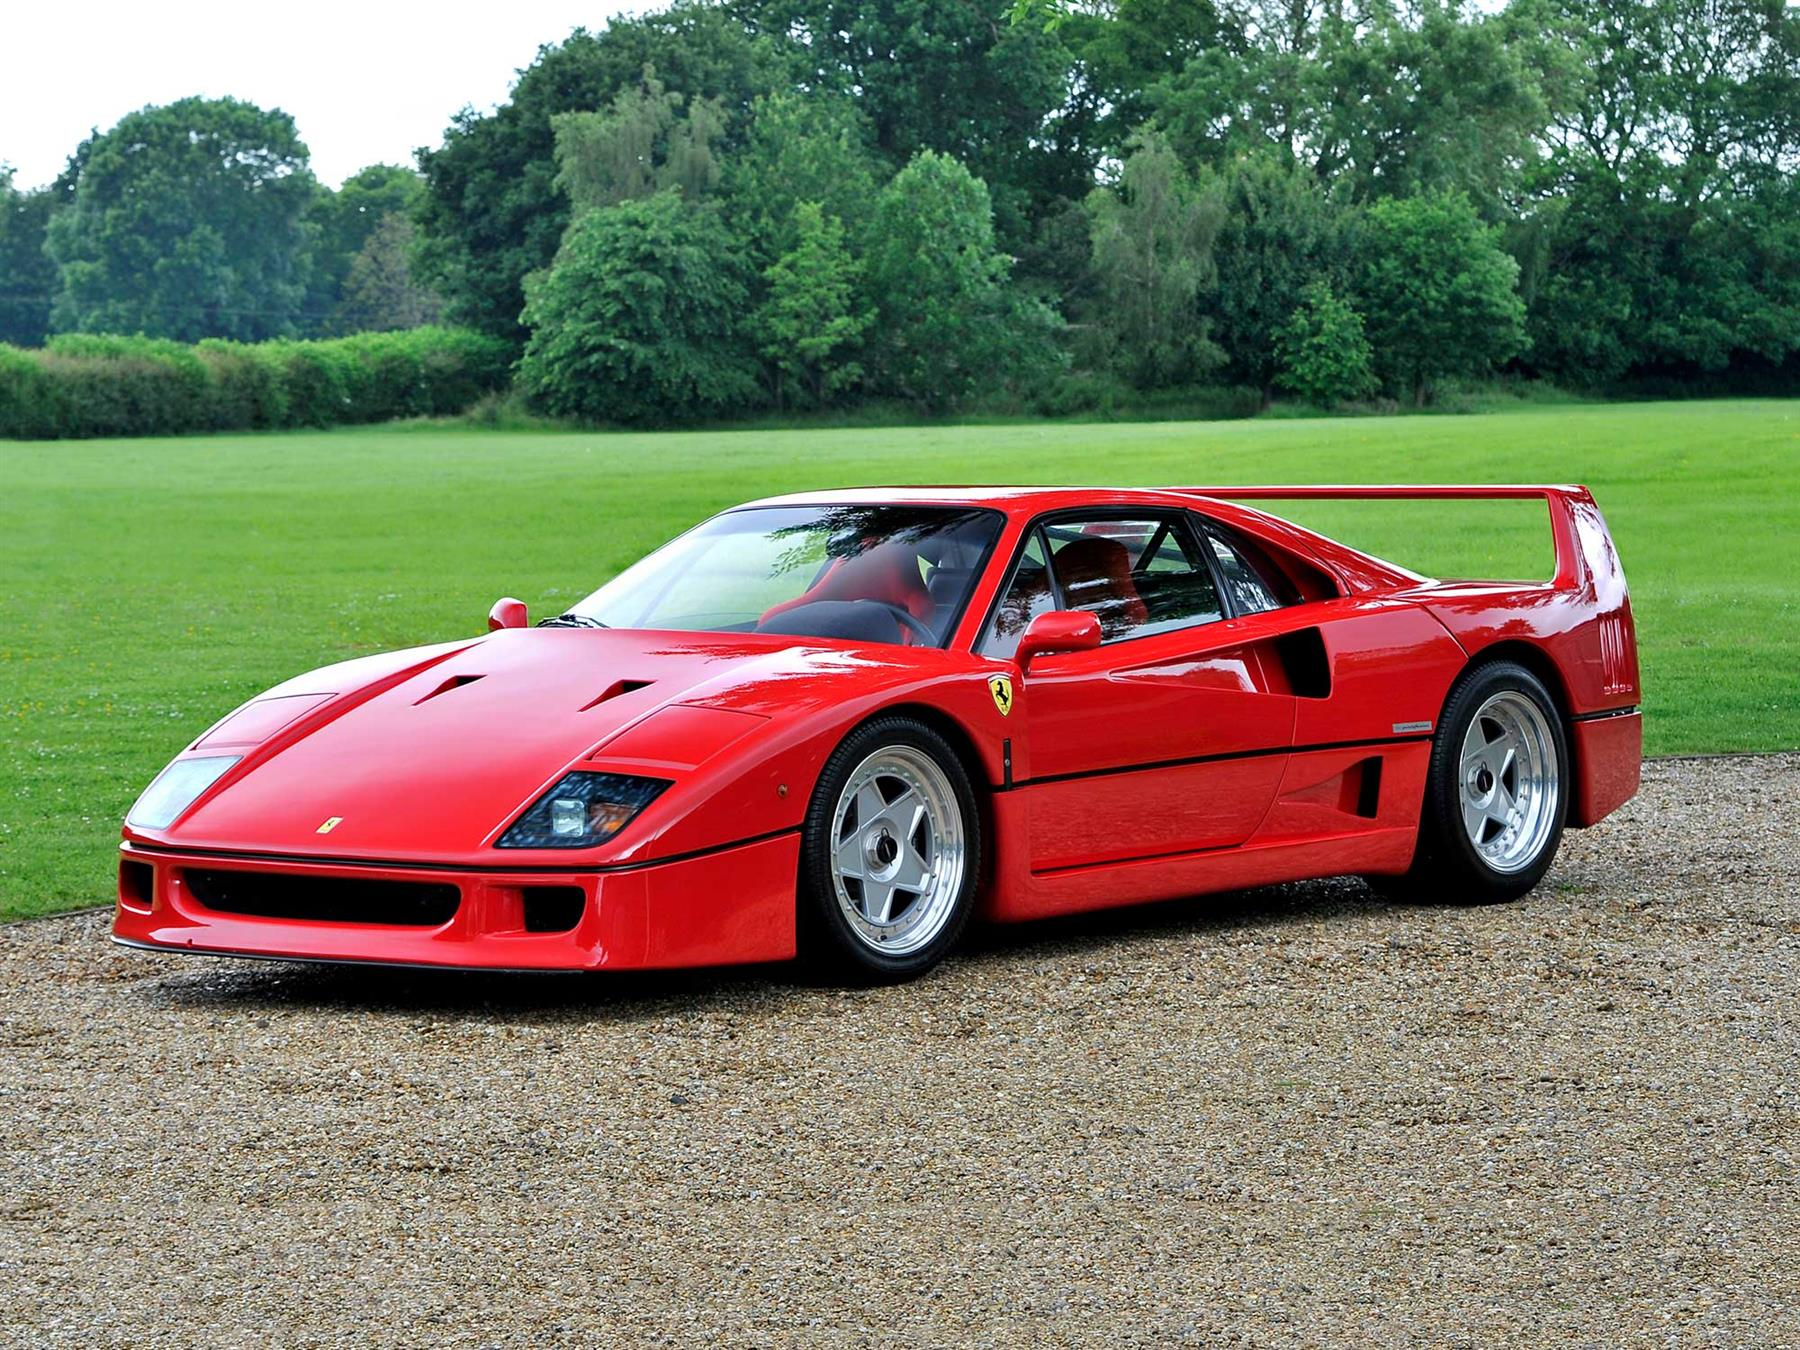 Image result for picture of red ferrari f40